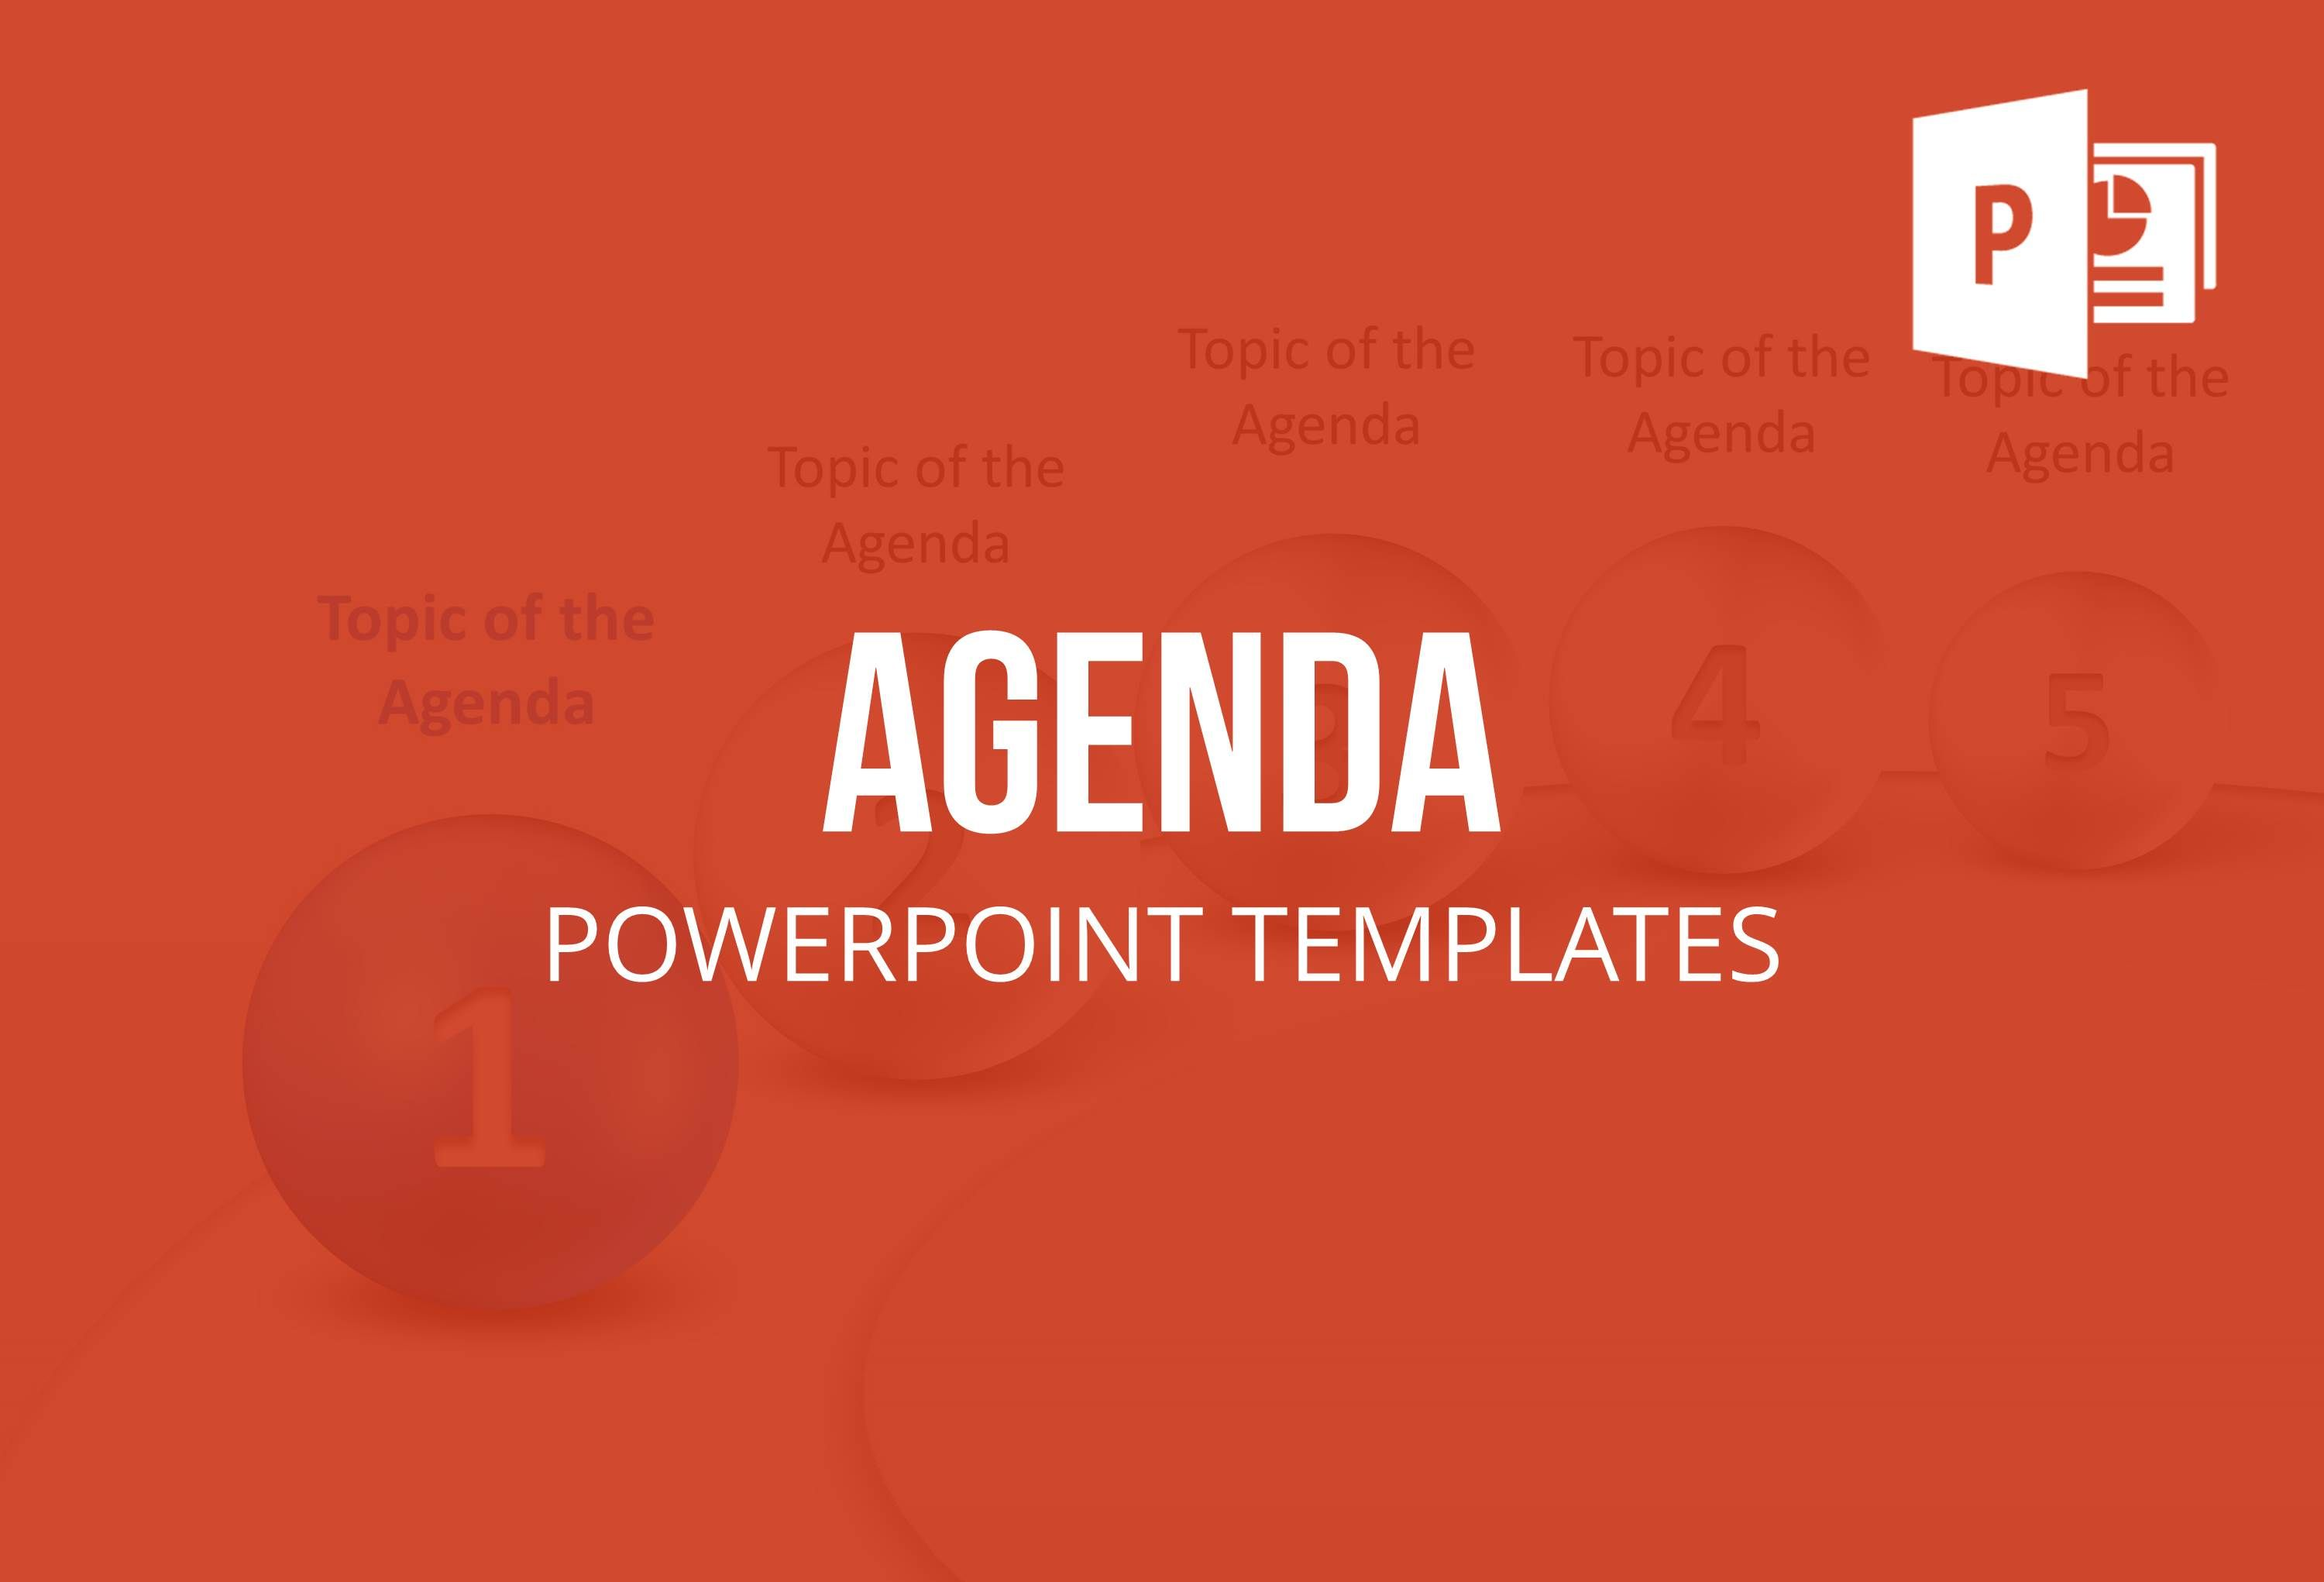 Save time by using these agenda templates for PowerPoint